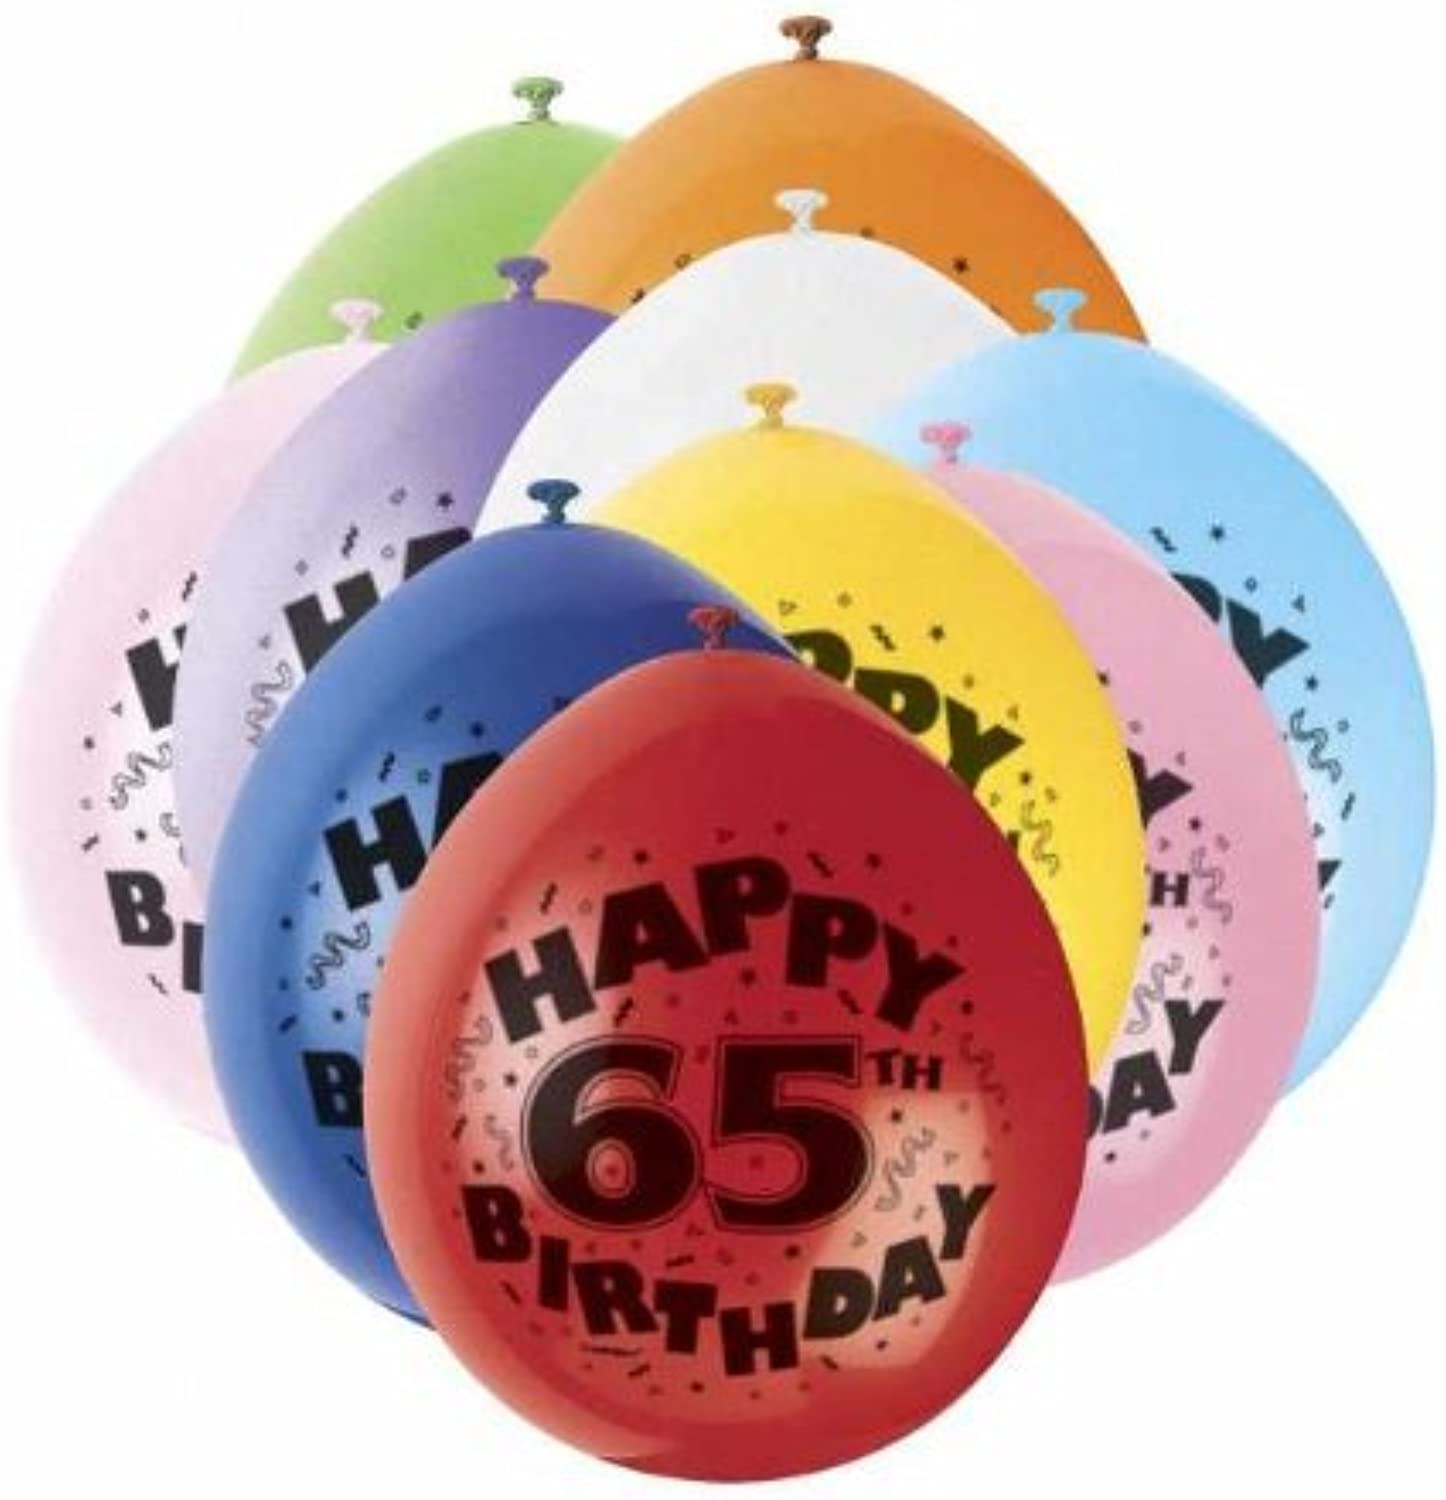 65th Happy Birthday Latex Balloons 10pk by Party Bags 2 Go